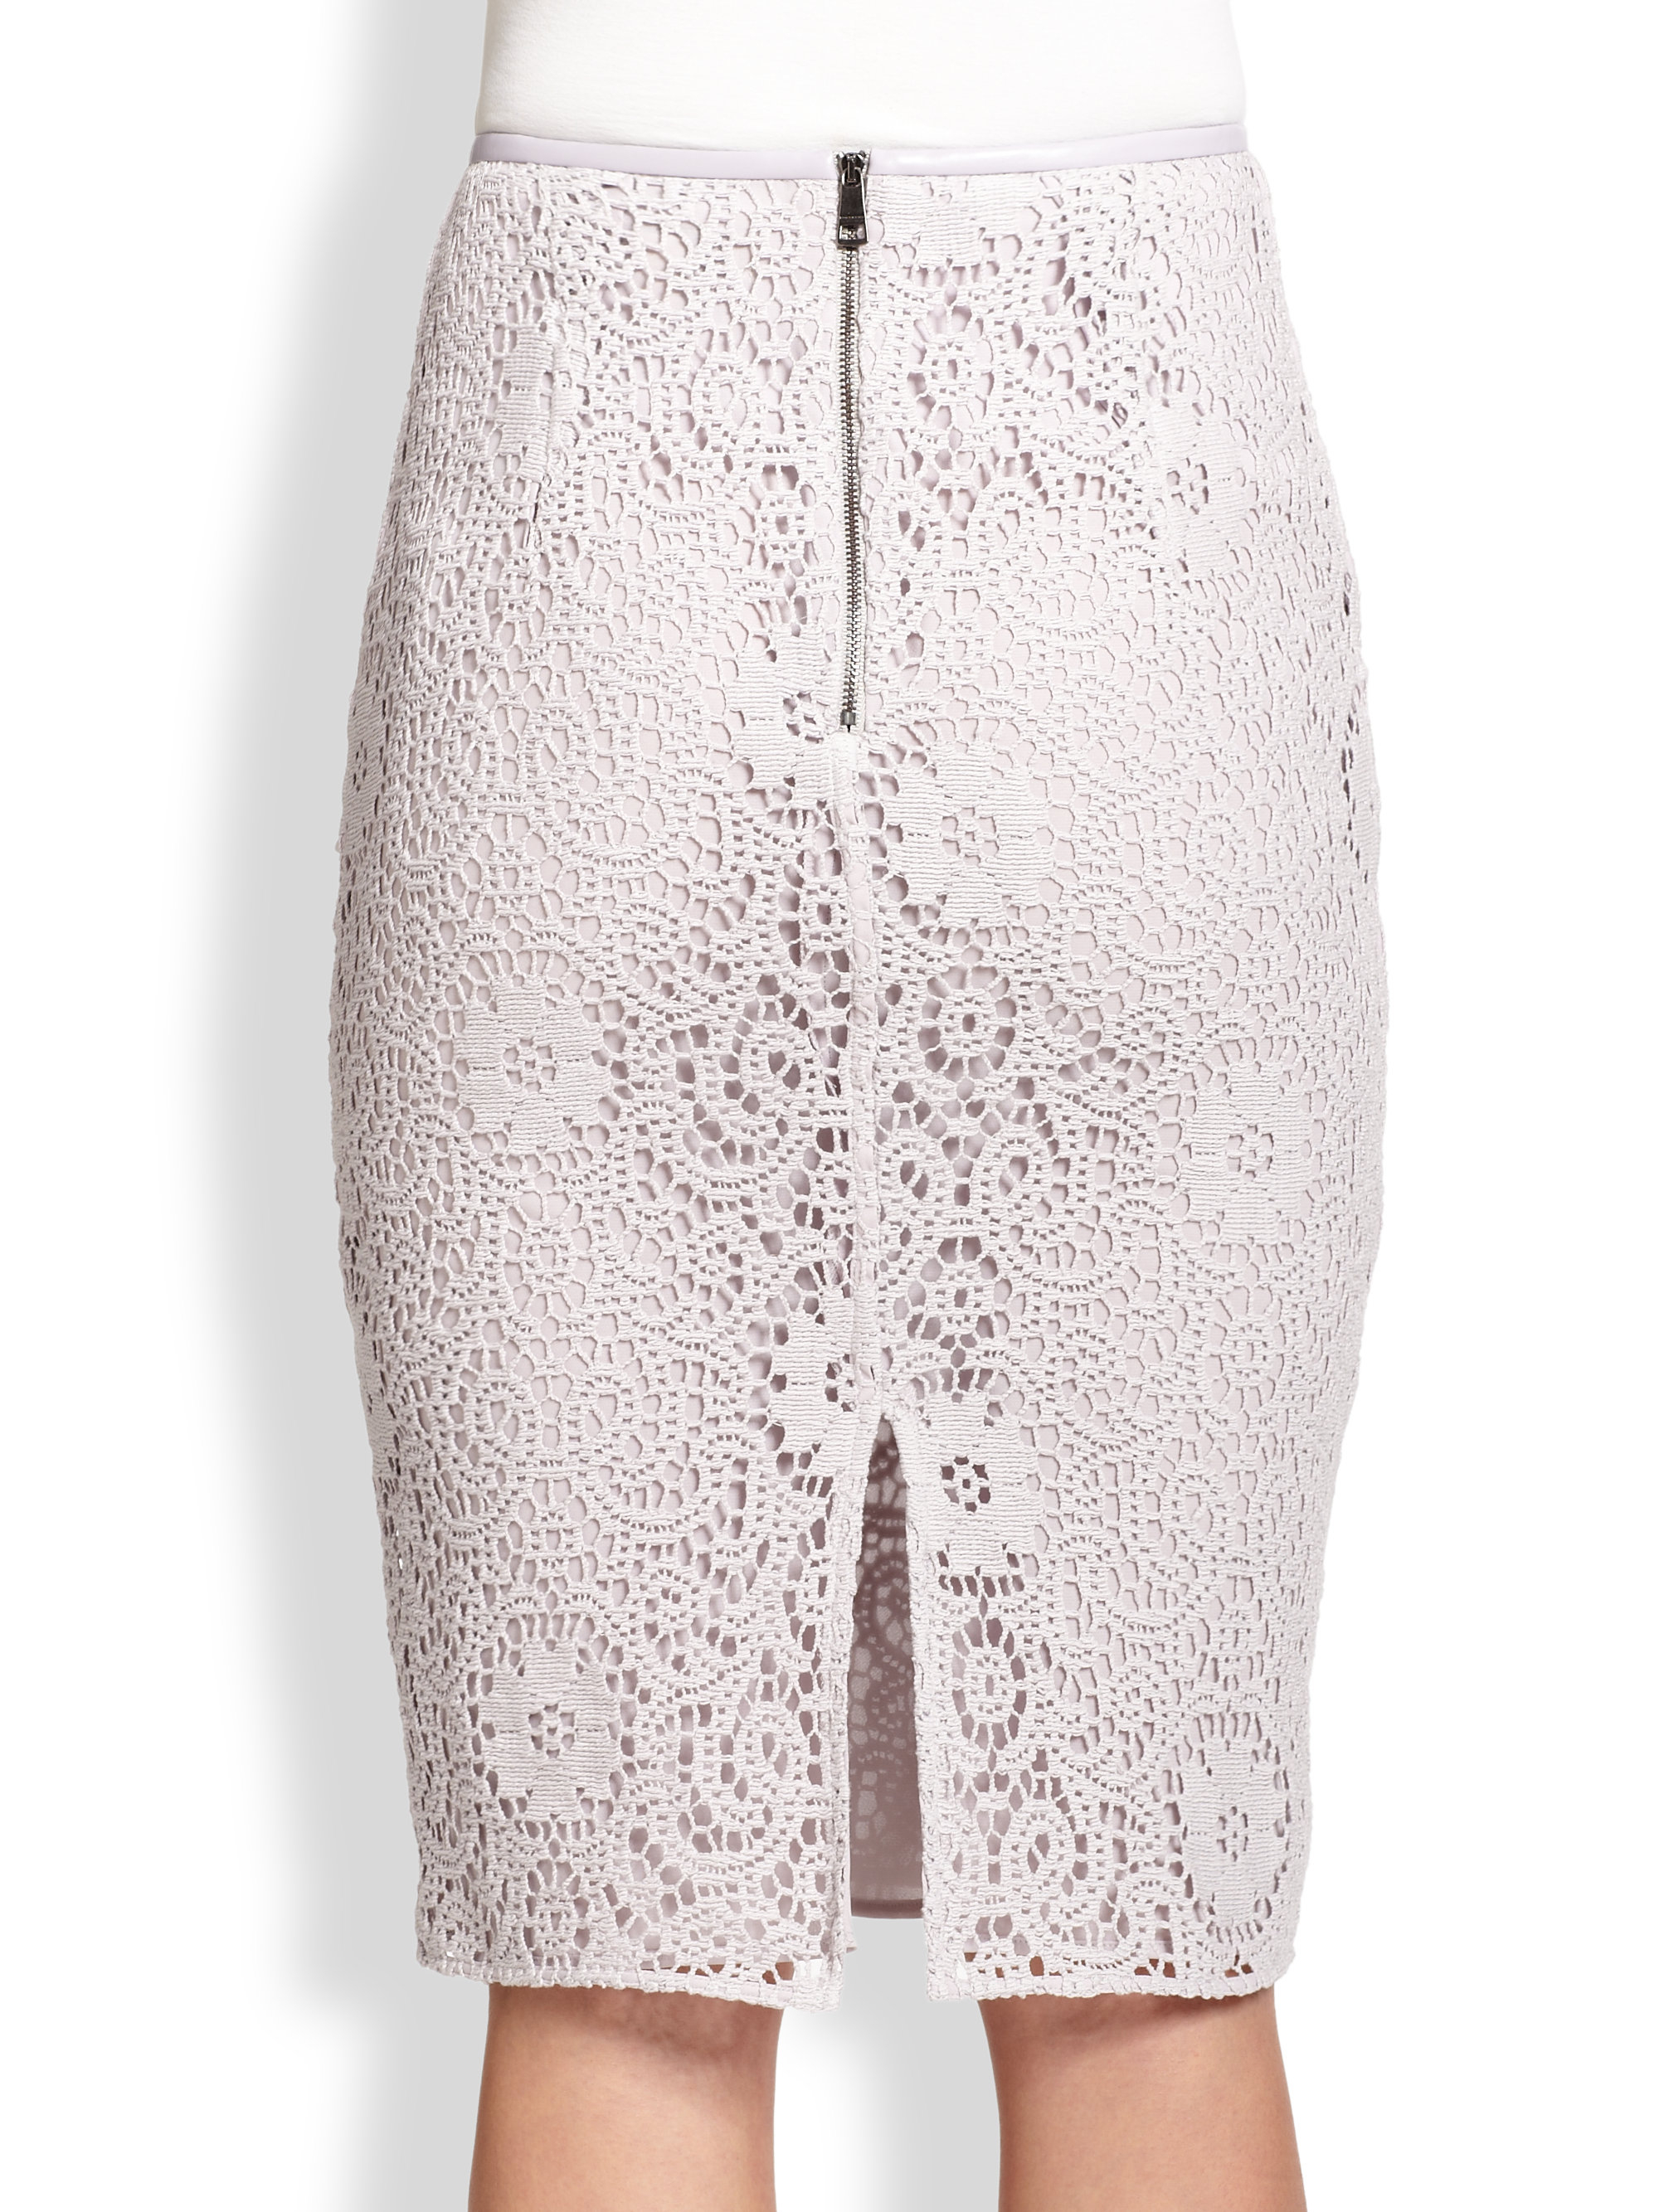 21322cc5b9 Burberry Crochet Lace Pencil Skirt in Purple - Lyst